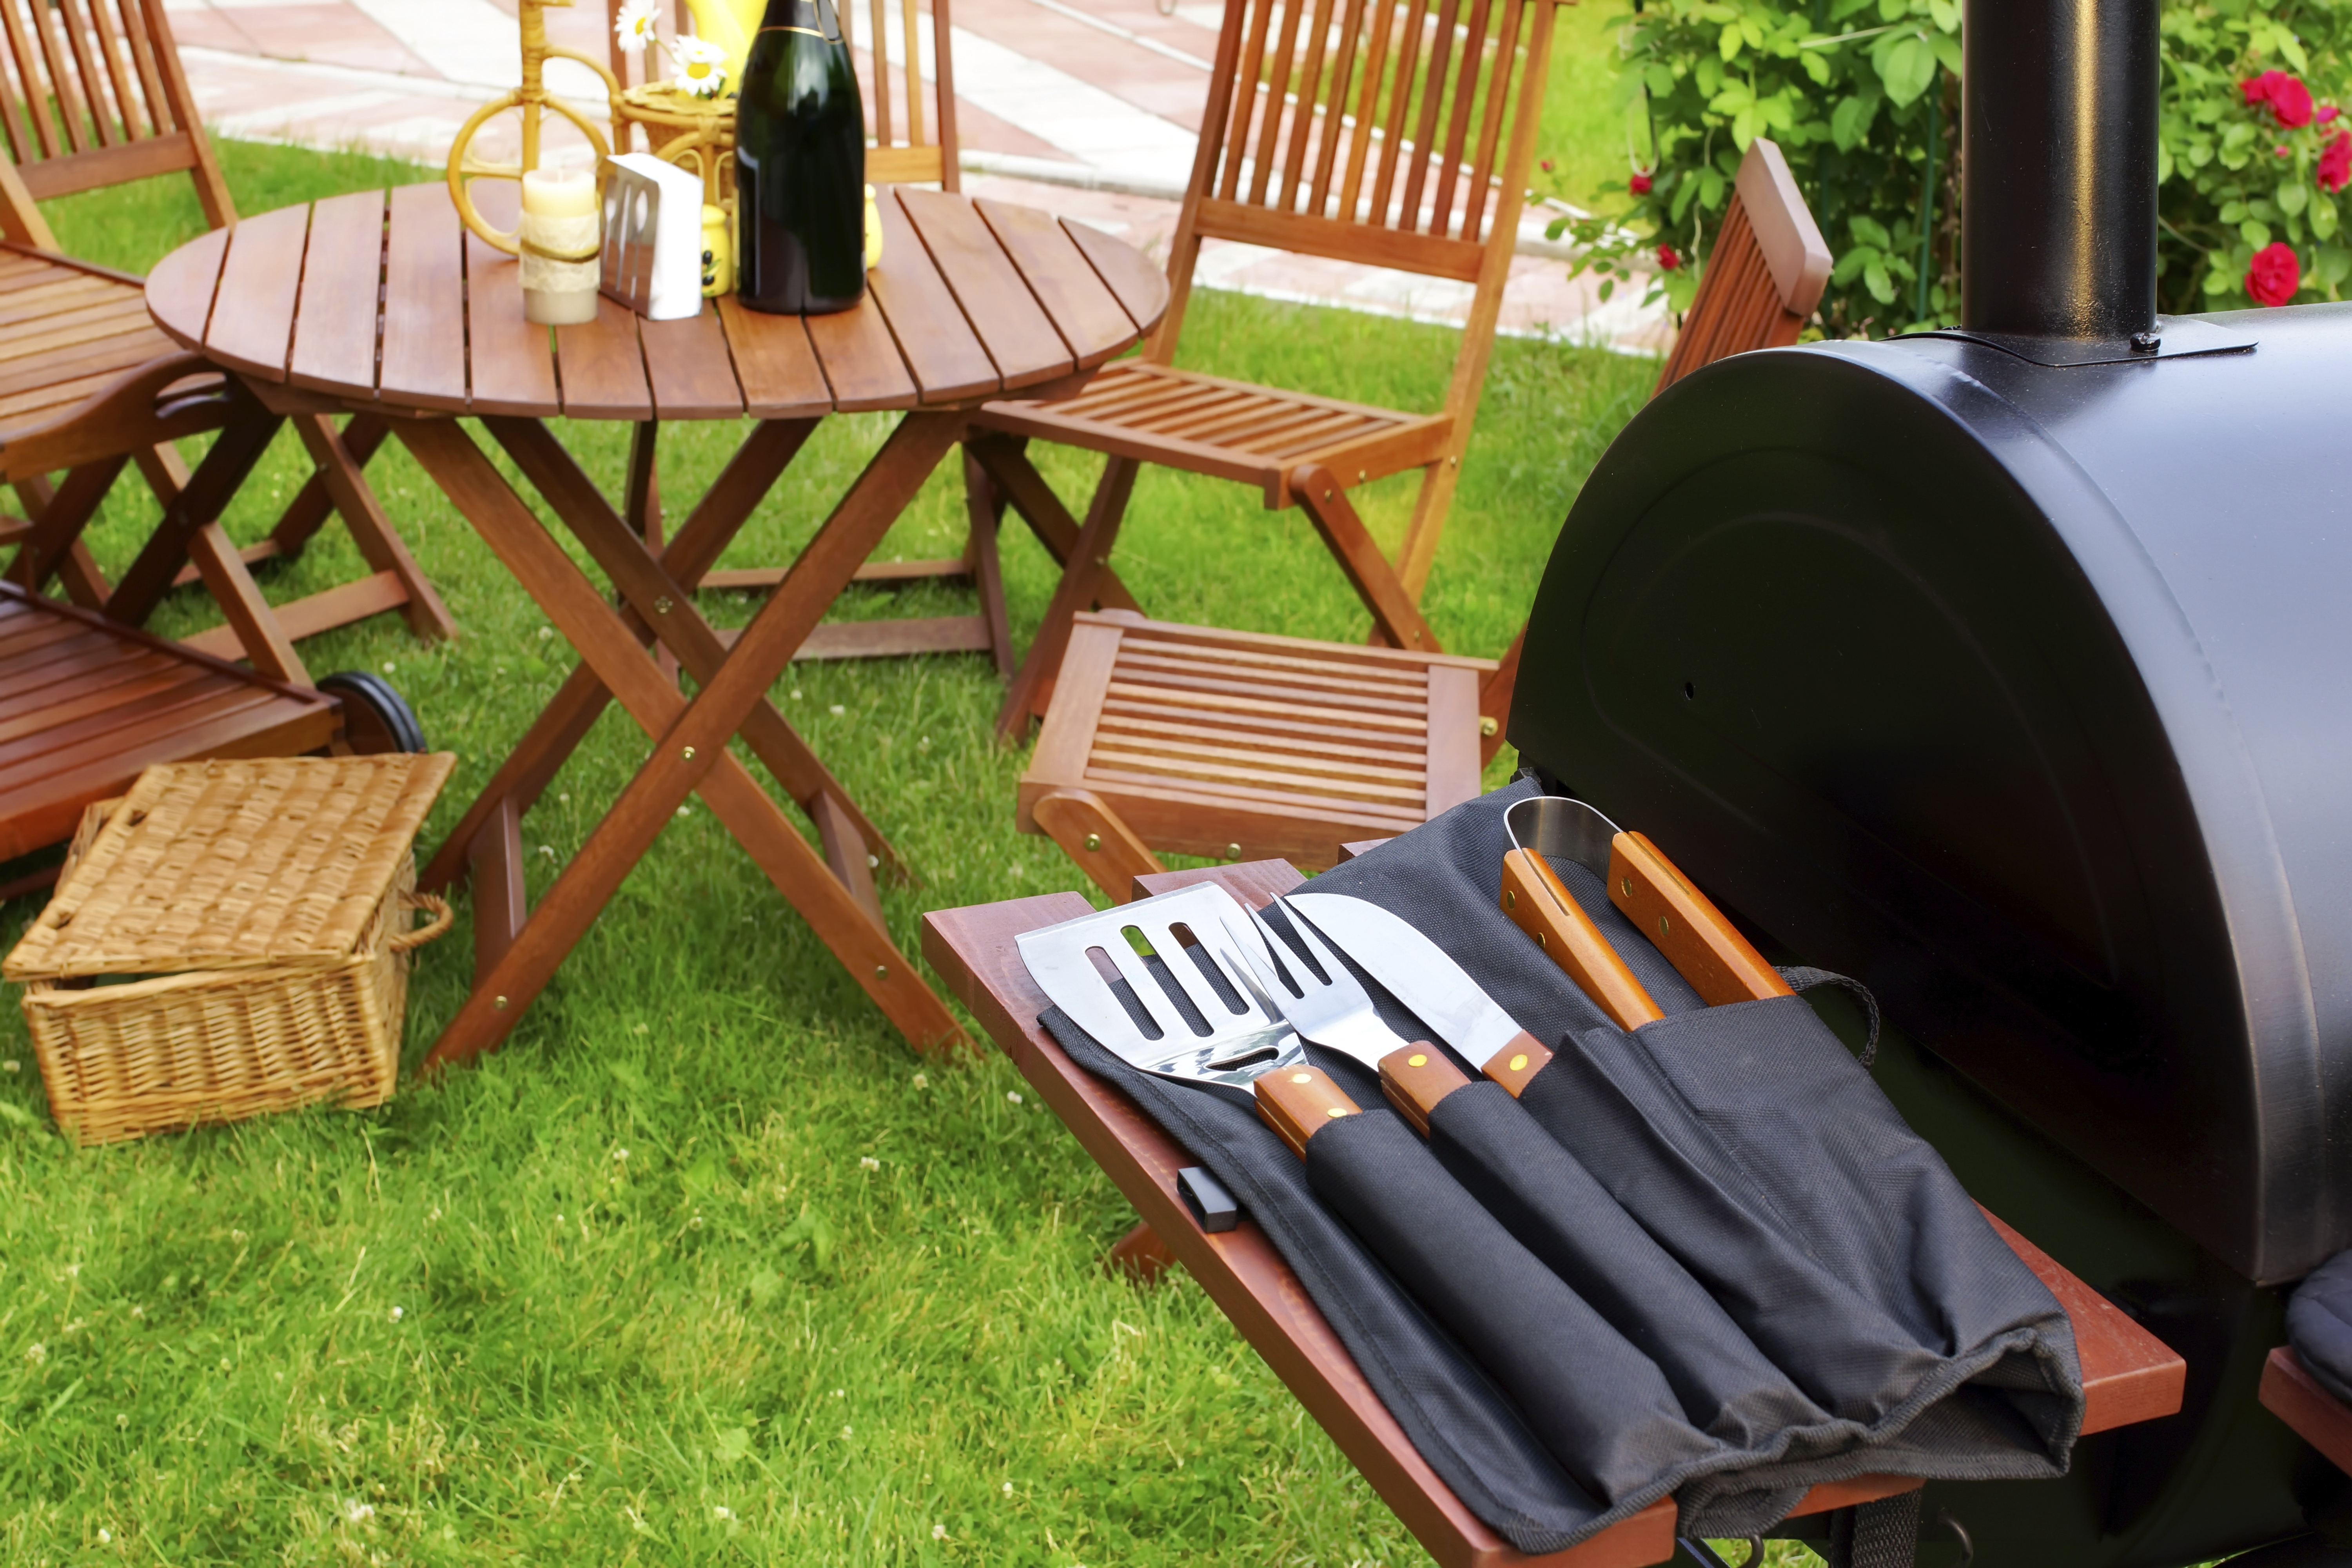 Get your home (and grill) ready for Memorial Day weekend!